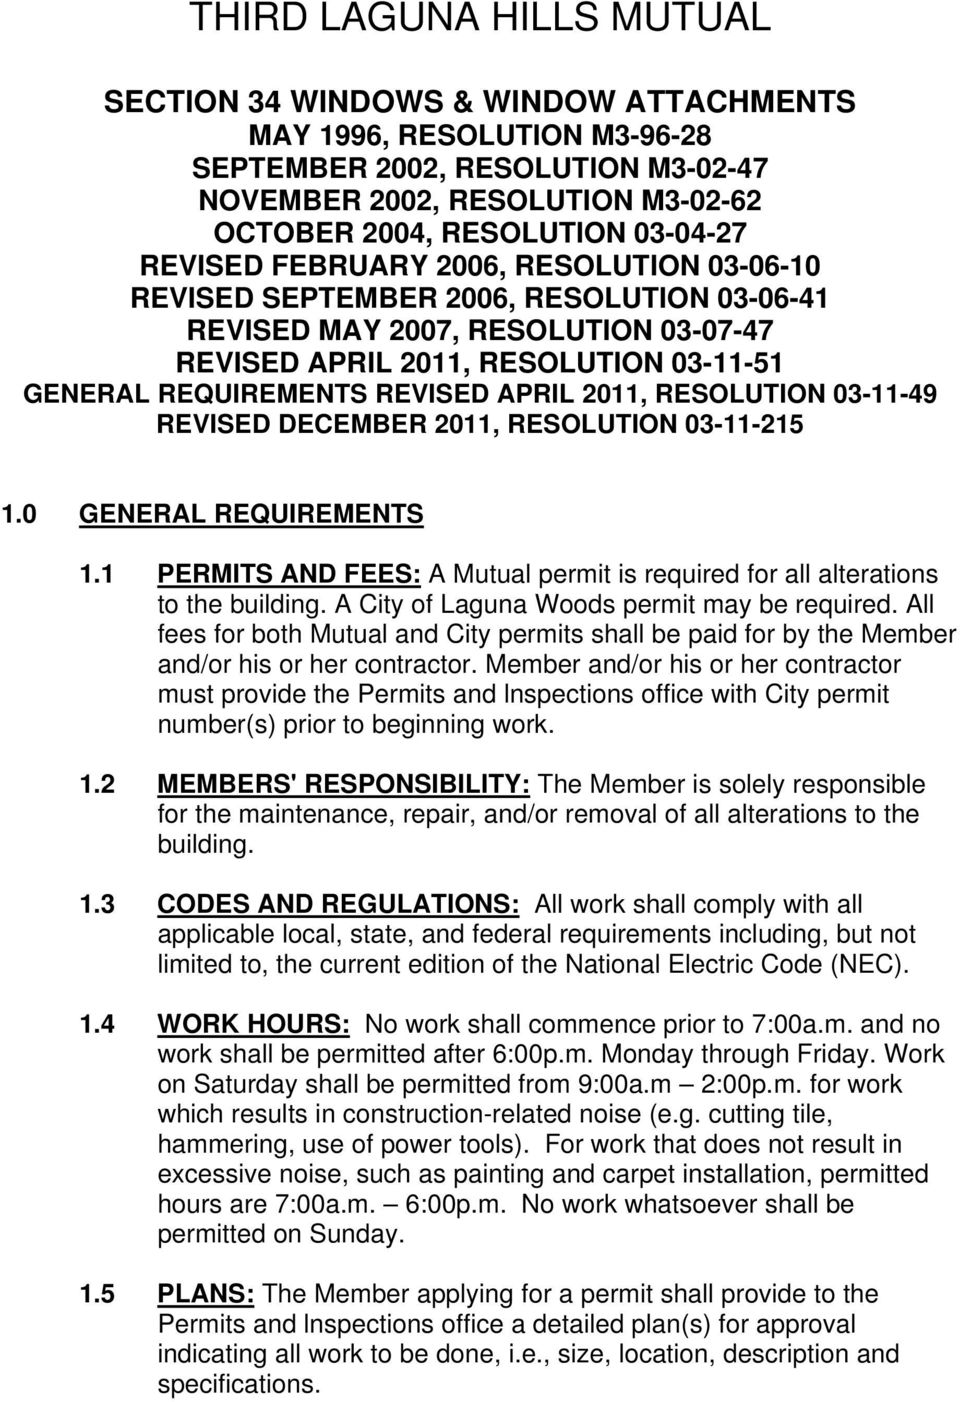 REVISED APRIL 2011, RESOLUTION 03-11-49 REVISED DECEMBER 2011, RESOLUTION 03-11-215 1.0 GENERAL REQUIREMENTS 1.1 PERMITS AND FEES: A Mutual permit is required for all alterations to the building.